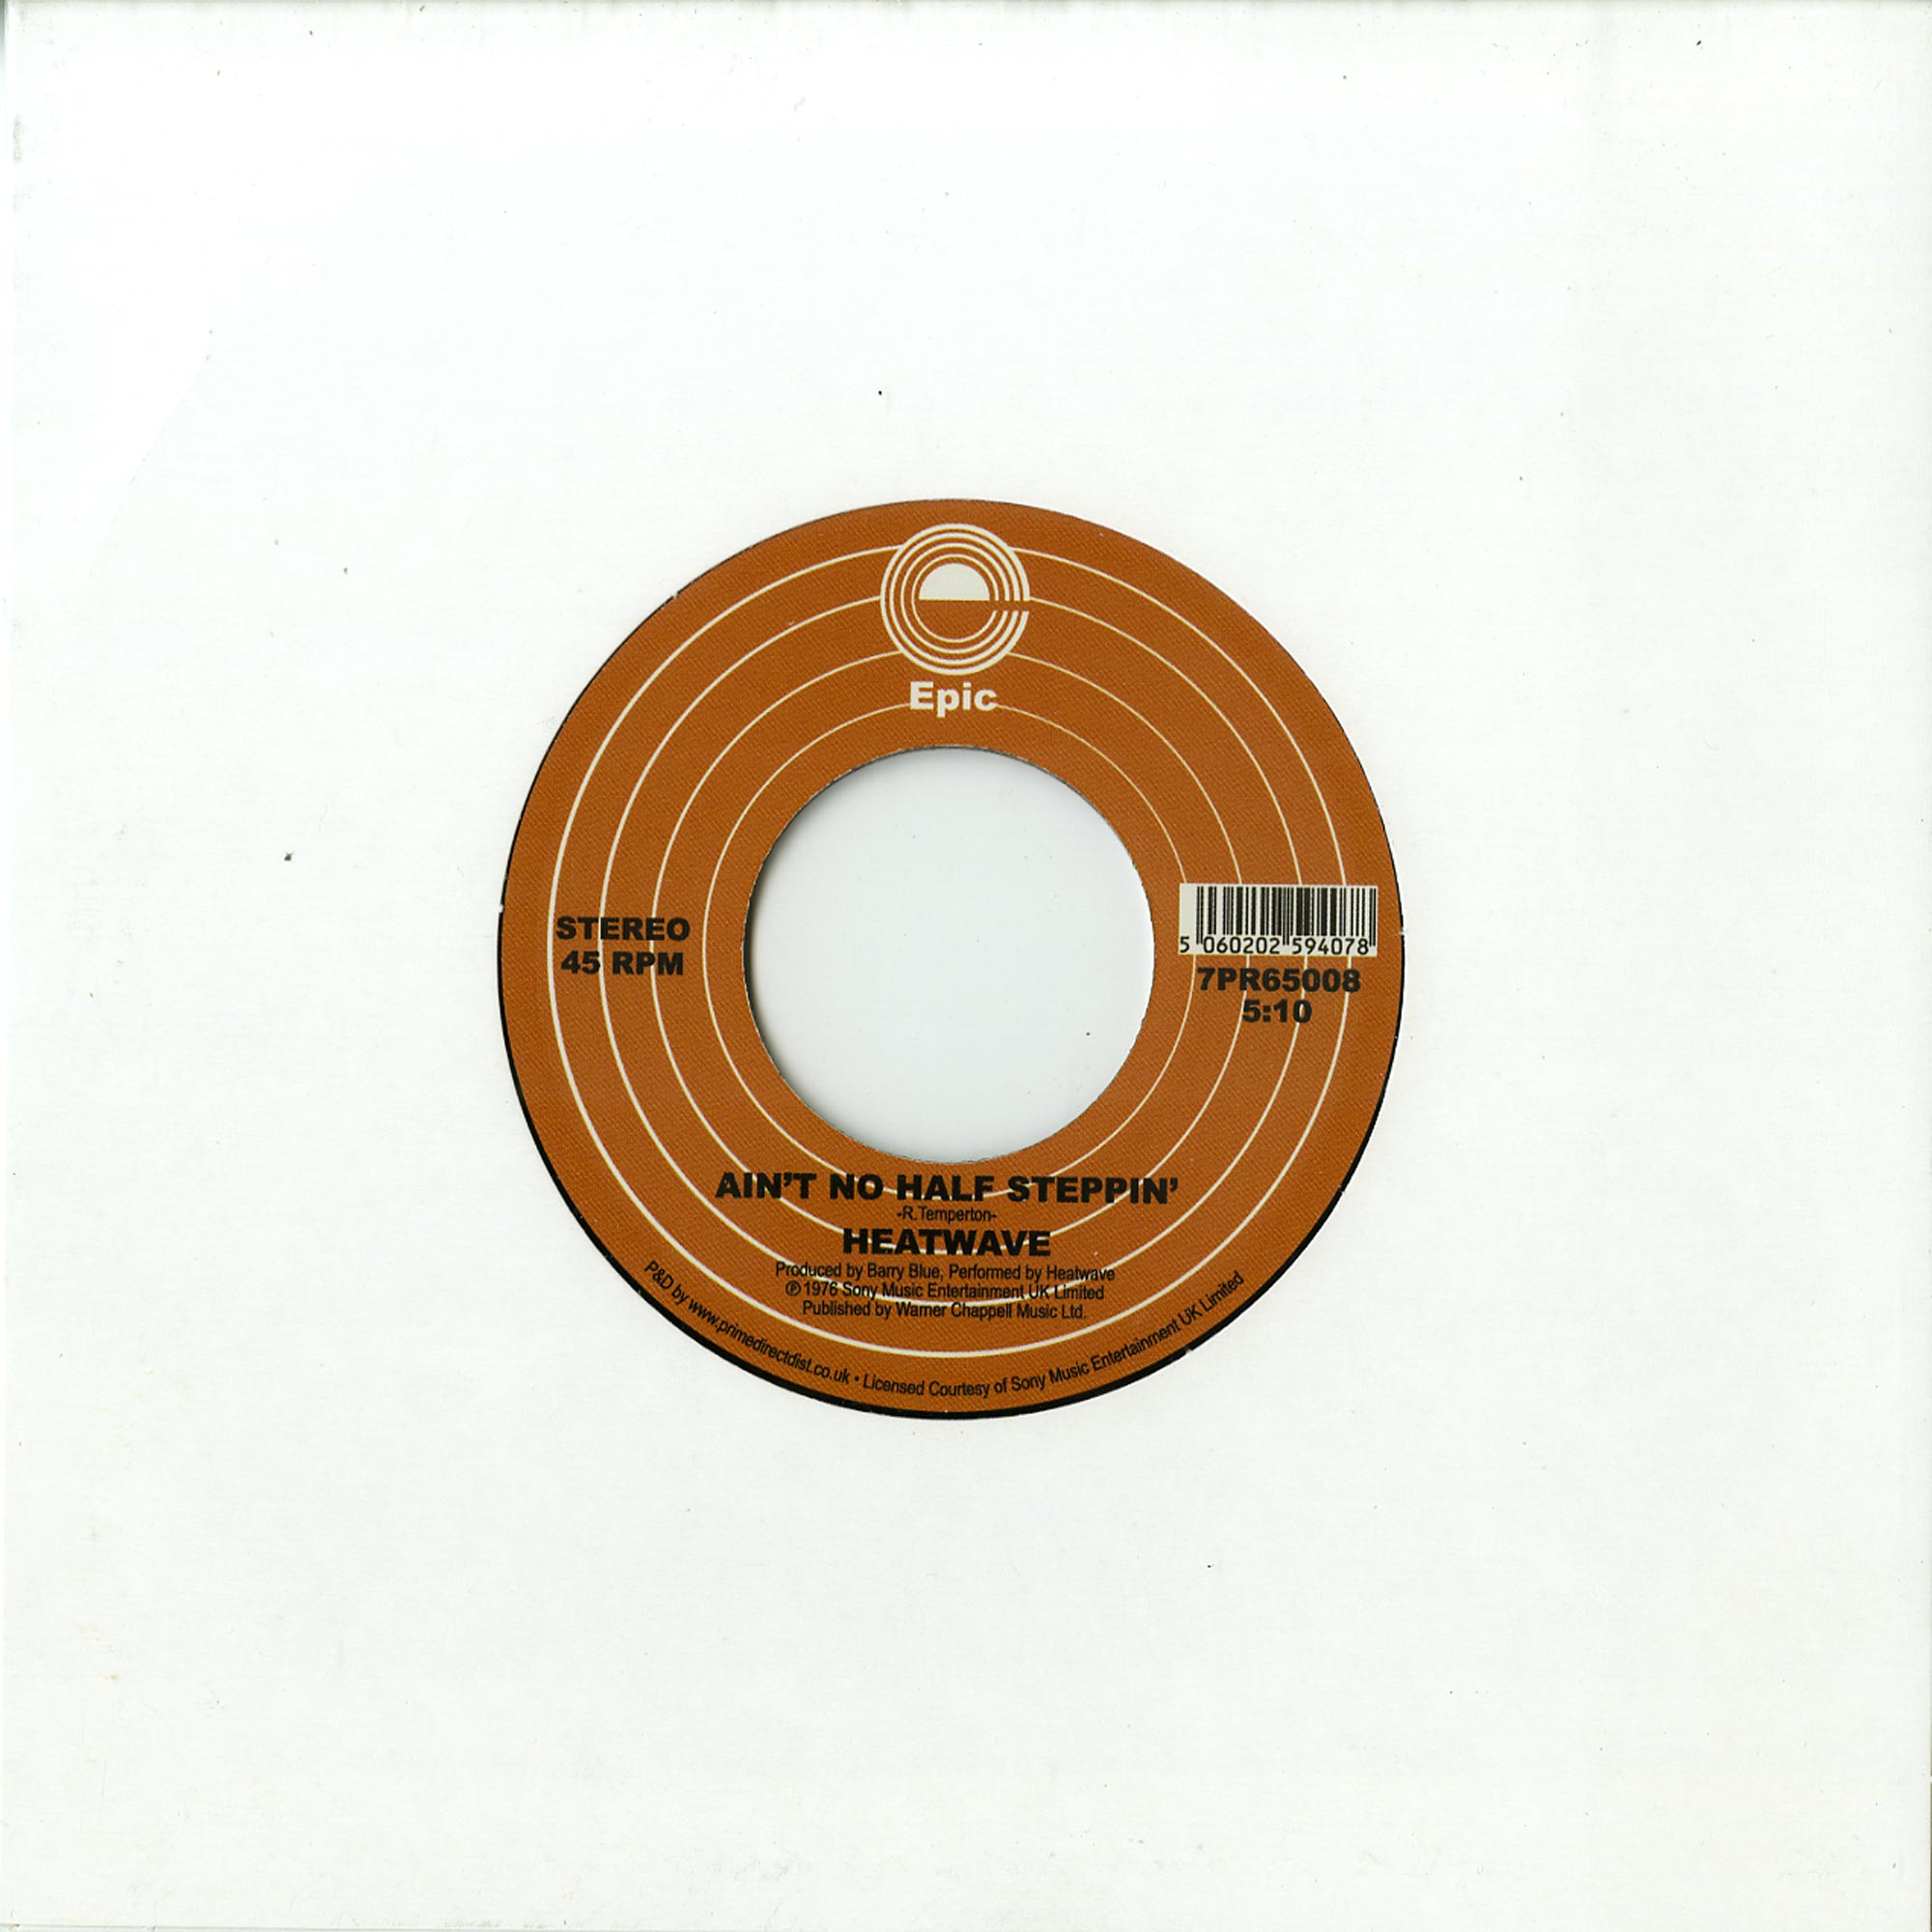 Heatwave - THE STAR OF A STORY / AINT NO HALF STEPPIN